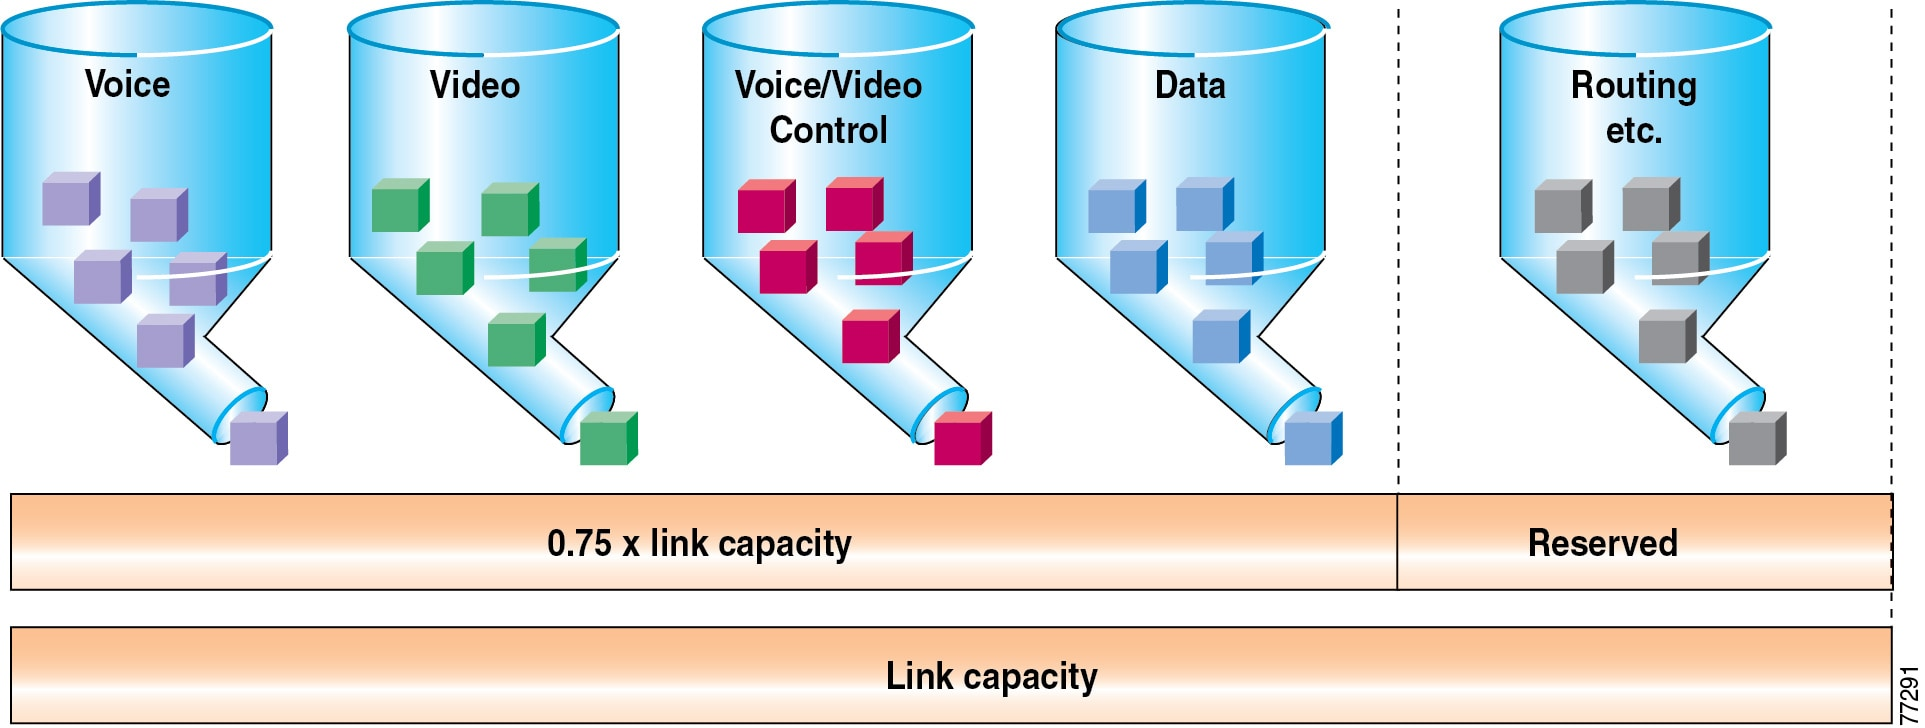 Cisco Unified Communications Srnd Based On Callmanager Console Cable Wiring Diagram 3550 In Addition To Using No More Than 75 Of The Total Available Bandwidth For Data Voice And Video Configured All Llq Priority